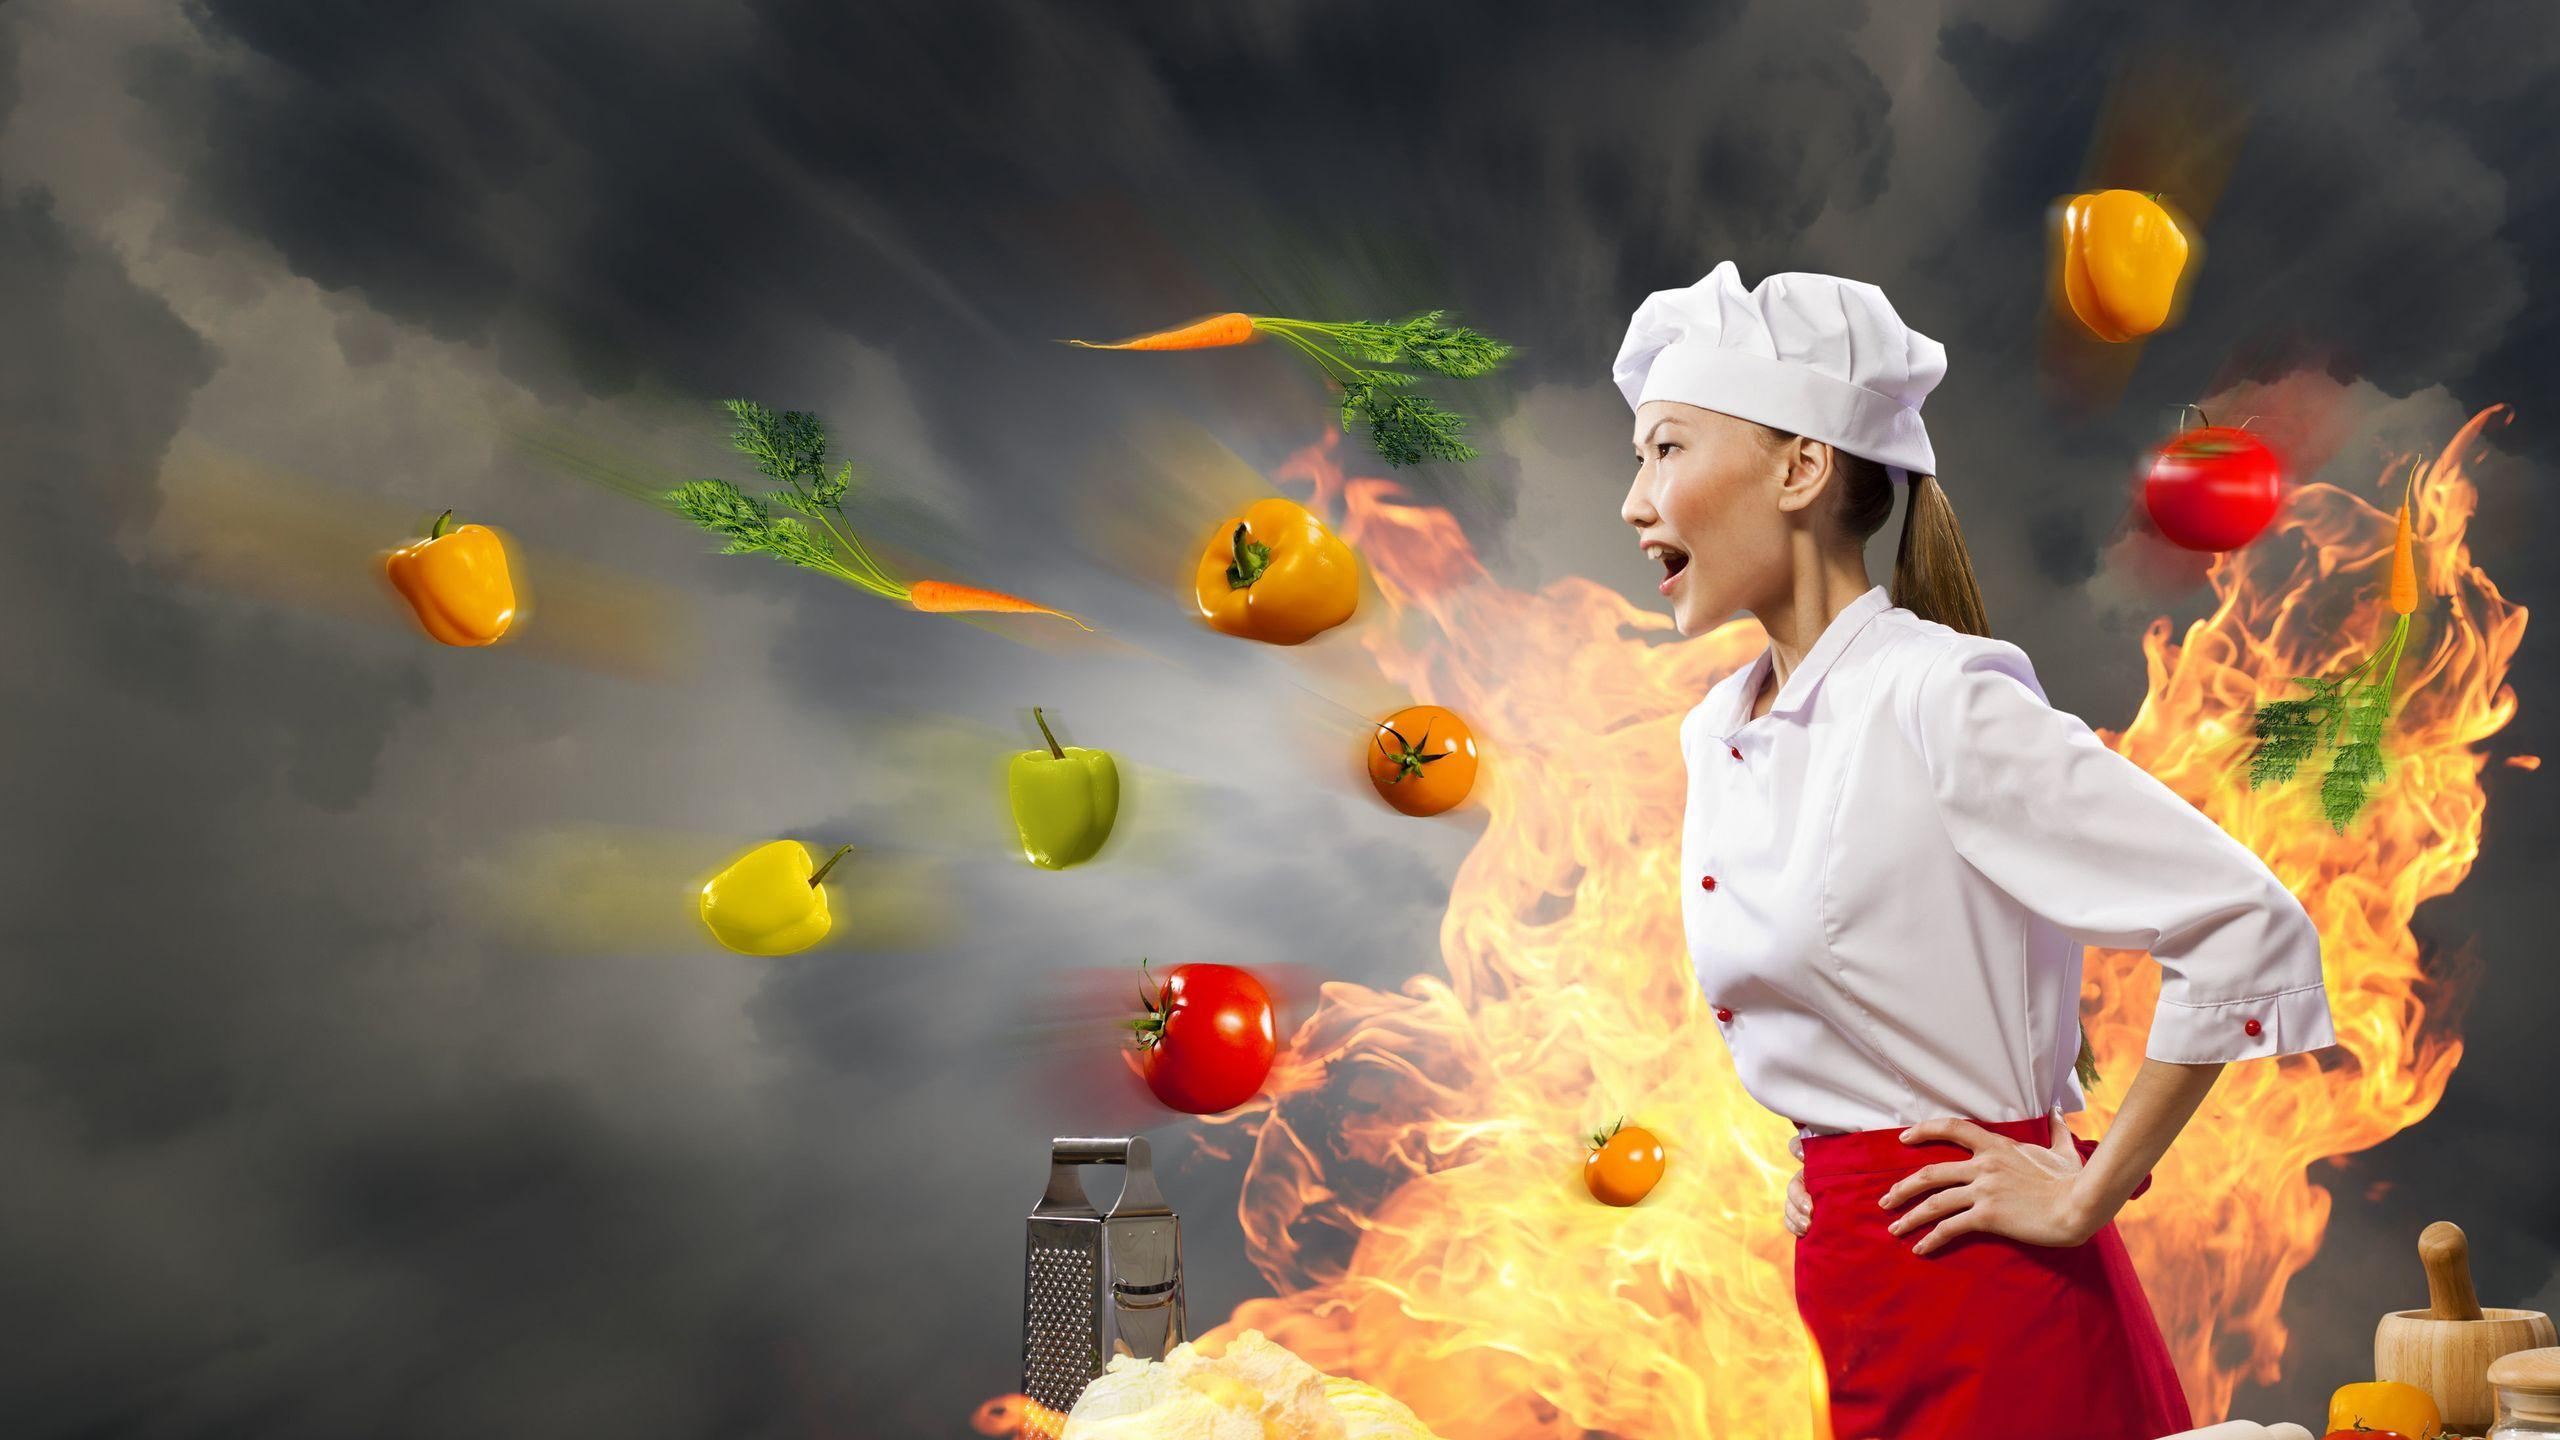 Chef Wallpapers Wallpaper Cave